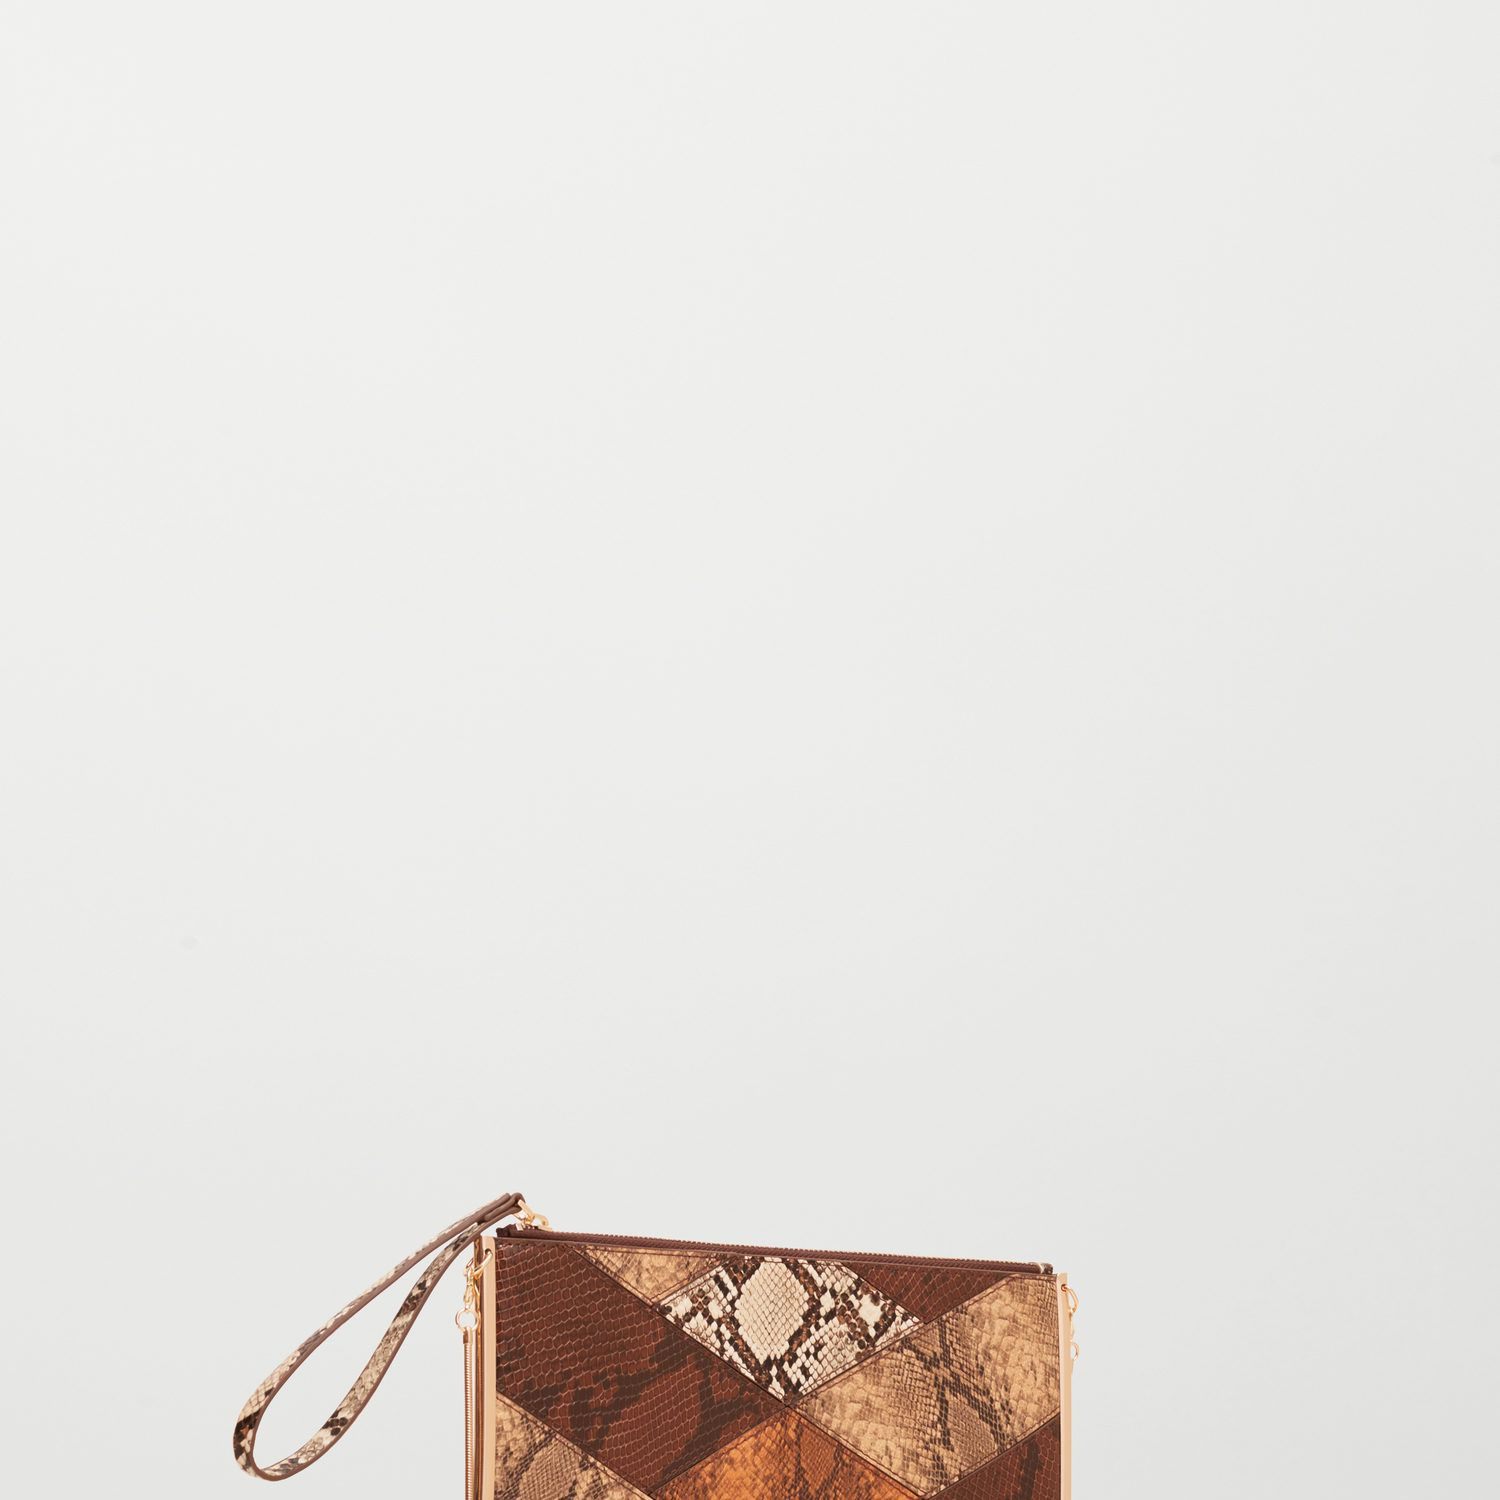 "<p>This clutch bag may look unassuming but it's oversized <em data-redactor-tag=""em"" data-verified=""redactor"">and</em> packs a pretty punch, too.</p><p><a href=""http://shop.mango.com/GB/p0/woman/accessories/bags/crossbody-bags/snake-effect-zip-clutch?id=73005591_32&amp&#x3B;n=1&amp&#x3B;s=accesorios.bolsos"" target=""_blank"">Snake-effect zip clutch, £19.99, Mango</a></p><p><em data-redactor-tag=""em"">Head in store and snap up any of these items by paying with your mobile thanks to&nbsp&#x3B;<a class=""body-el-link standard-body-el-link"" href=""https://www.visa.co.uk/visa-with-android-pay"" target=""_blank"">Visa and Android Pay</a><sup data-redactor-tag=""sup"">TM.</sup><span class=""redactor-invisible-space"" data-verified=""redactor"" data-redactor-tag=""span"" data-redactor-class=""redactor-invisible-space""></span>Just download the app, add your Visa card and make a purchase!</em><span class=""redactor-invisible-space"" data-verified=""redactor"" data-redactor-tag=""span"" data-redactor-class=""redactor-invisible-space""></span><br></p><p><span class=""redactor-invisible-space"" data-verified=""redactor"" data-redactor-tag=""span"" data-redactor-class=""redactor-invisible-space""><em data-redactor-tag=""em""><em data-redactor-tag=""em"">Android Pay</em><em data-redactor-tag=""em"">&nbsp&#x3B;is a trademark of Google Inc</em><span class=""redactor-invisible-space"" data-verified=""redactor"" data-redactor-tag=""span"" data-redactor-class=""redactor-invisible-space""></span></em><span class=""redactor-invisible-space"" data-verified=""redactor"" data-redactor-tag=""span"" data-redactor-class=""redactor-invisible-space""></span><br></span></p>"